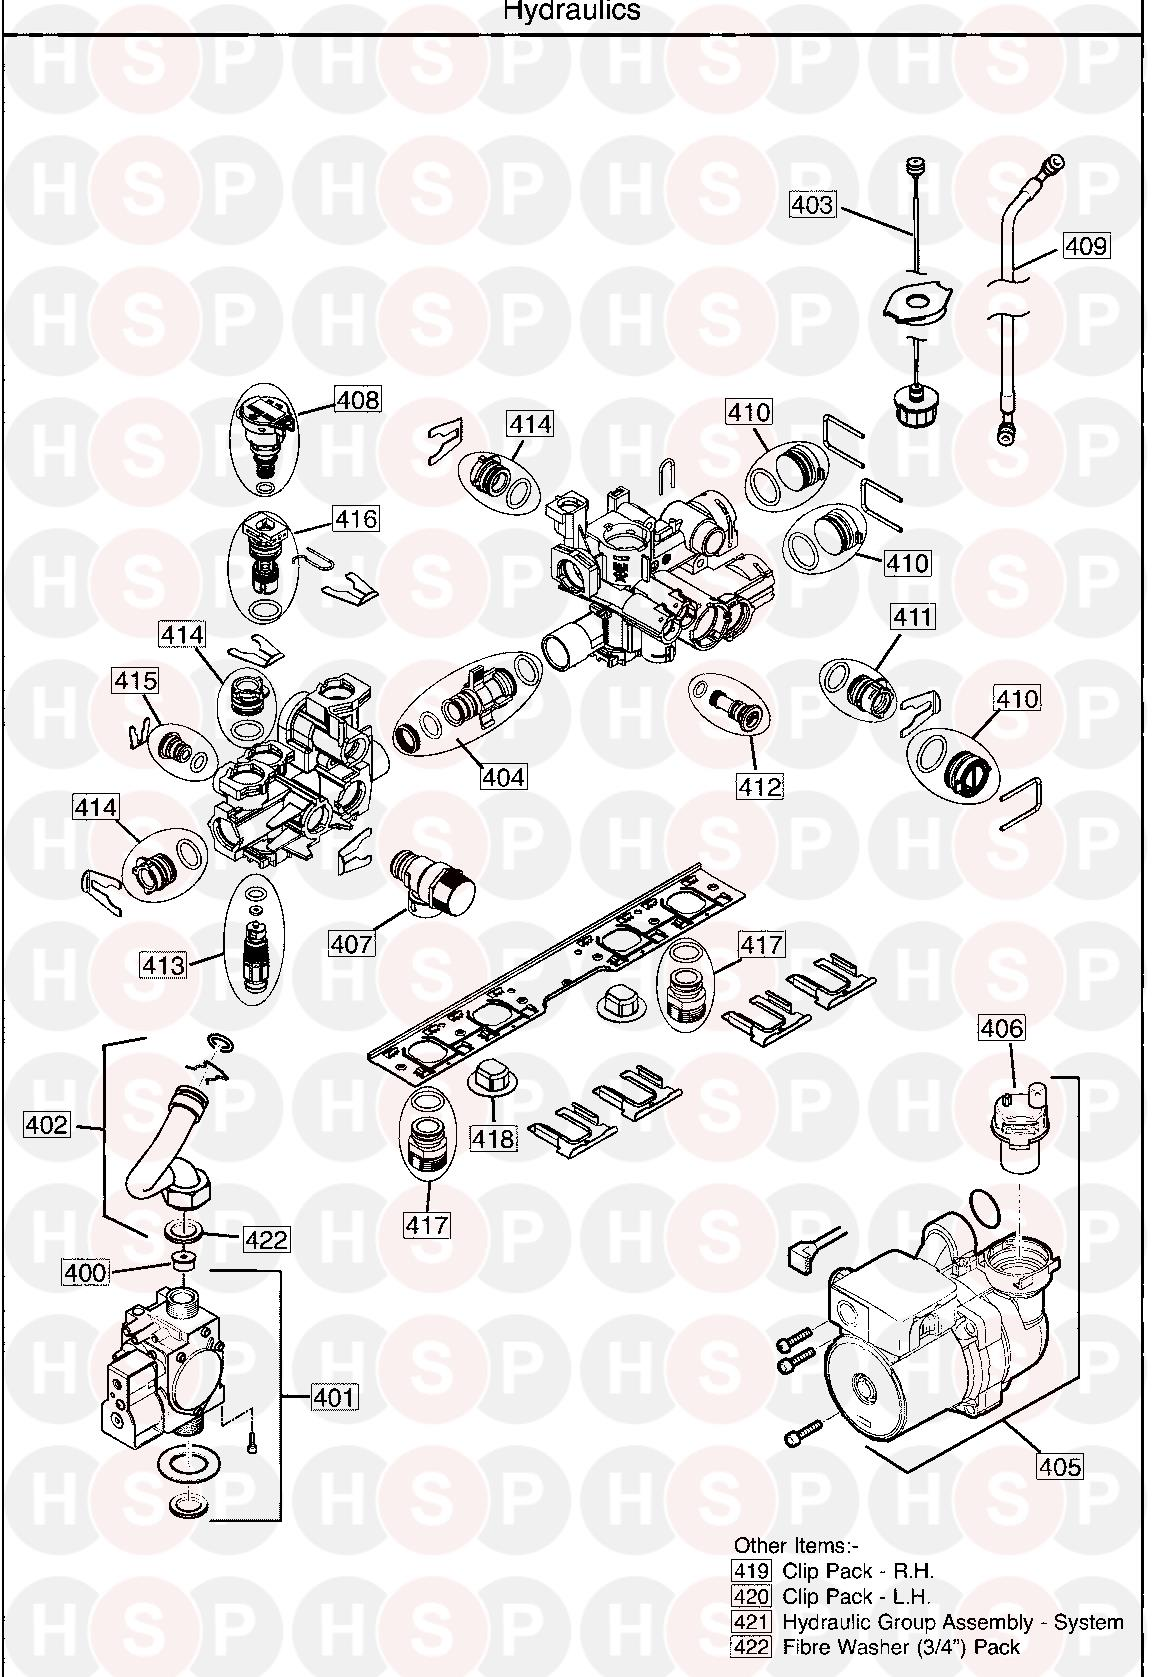 Hydraulics diagram for Baxi SYSTEM 32